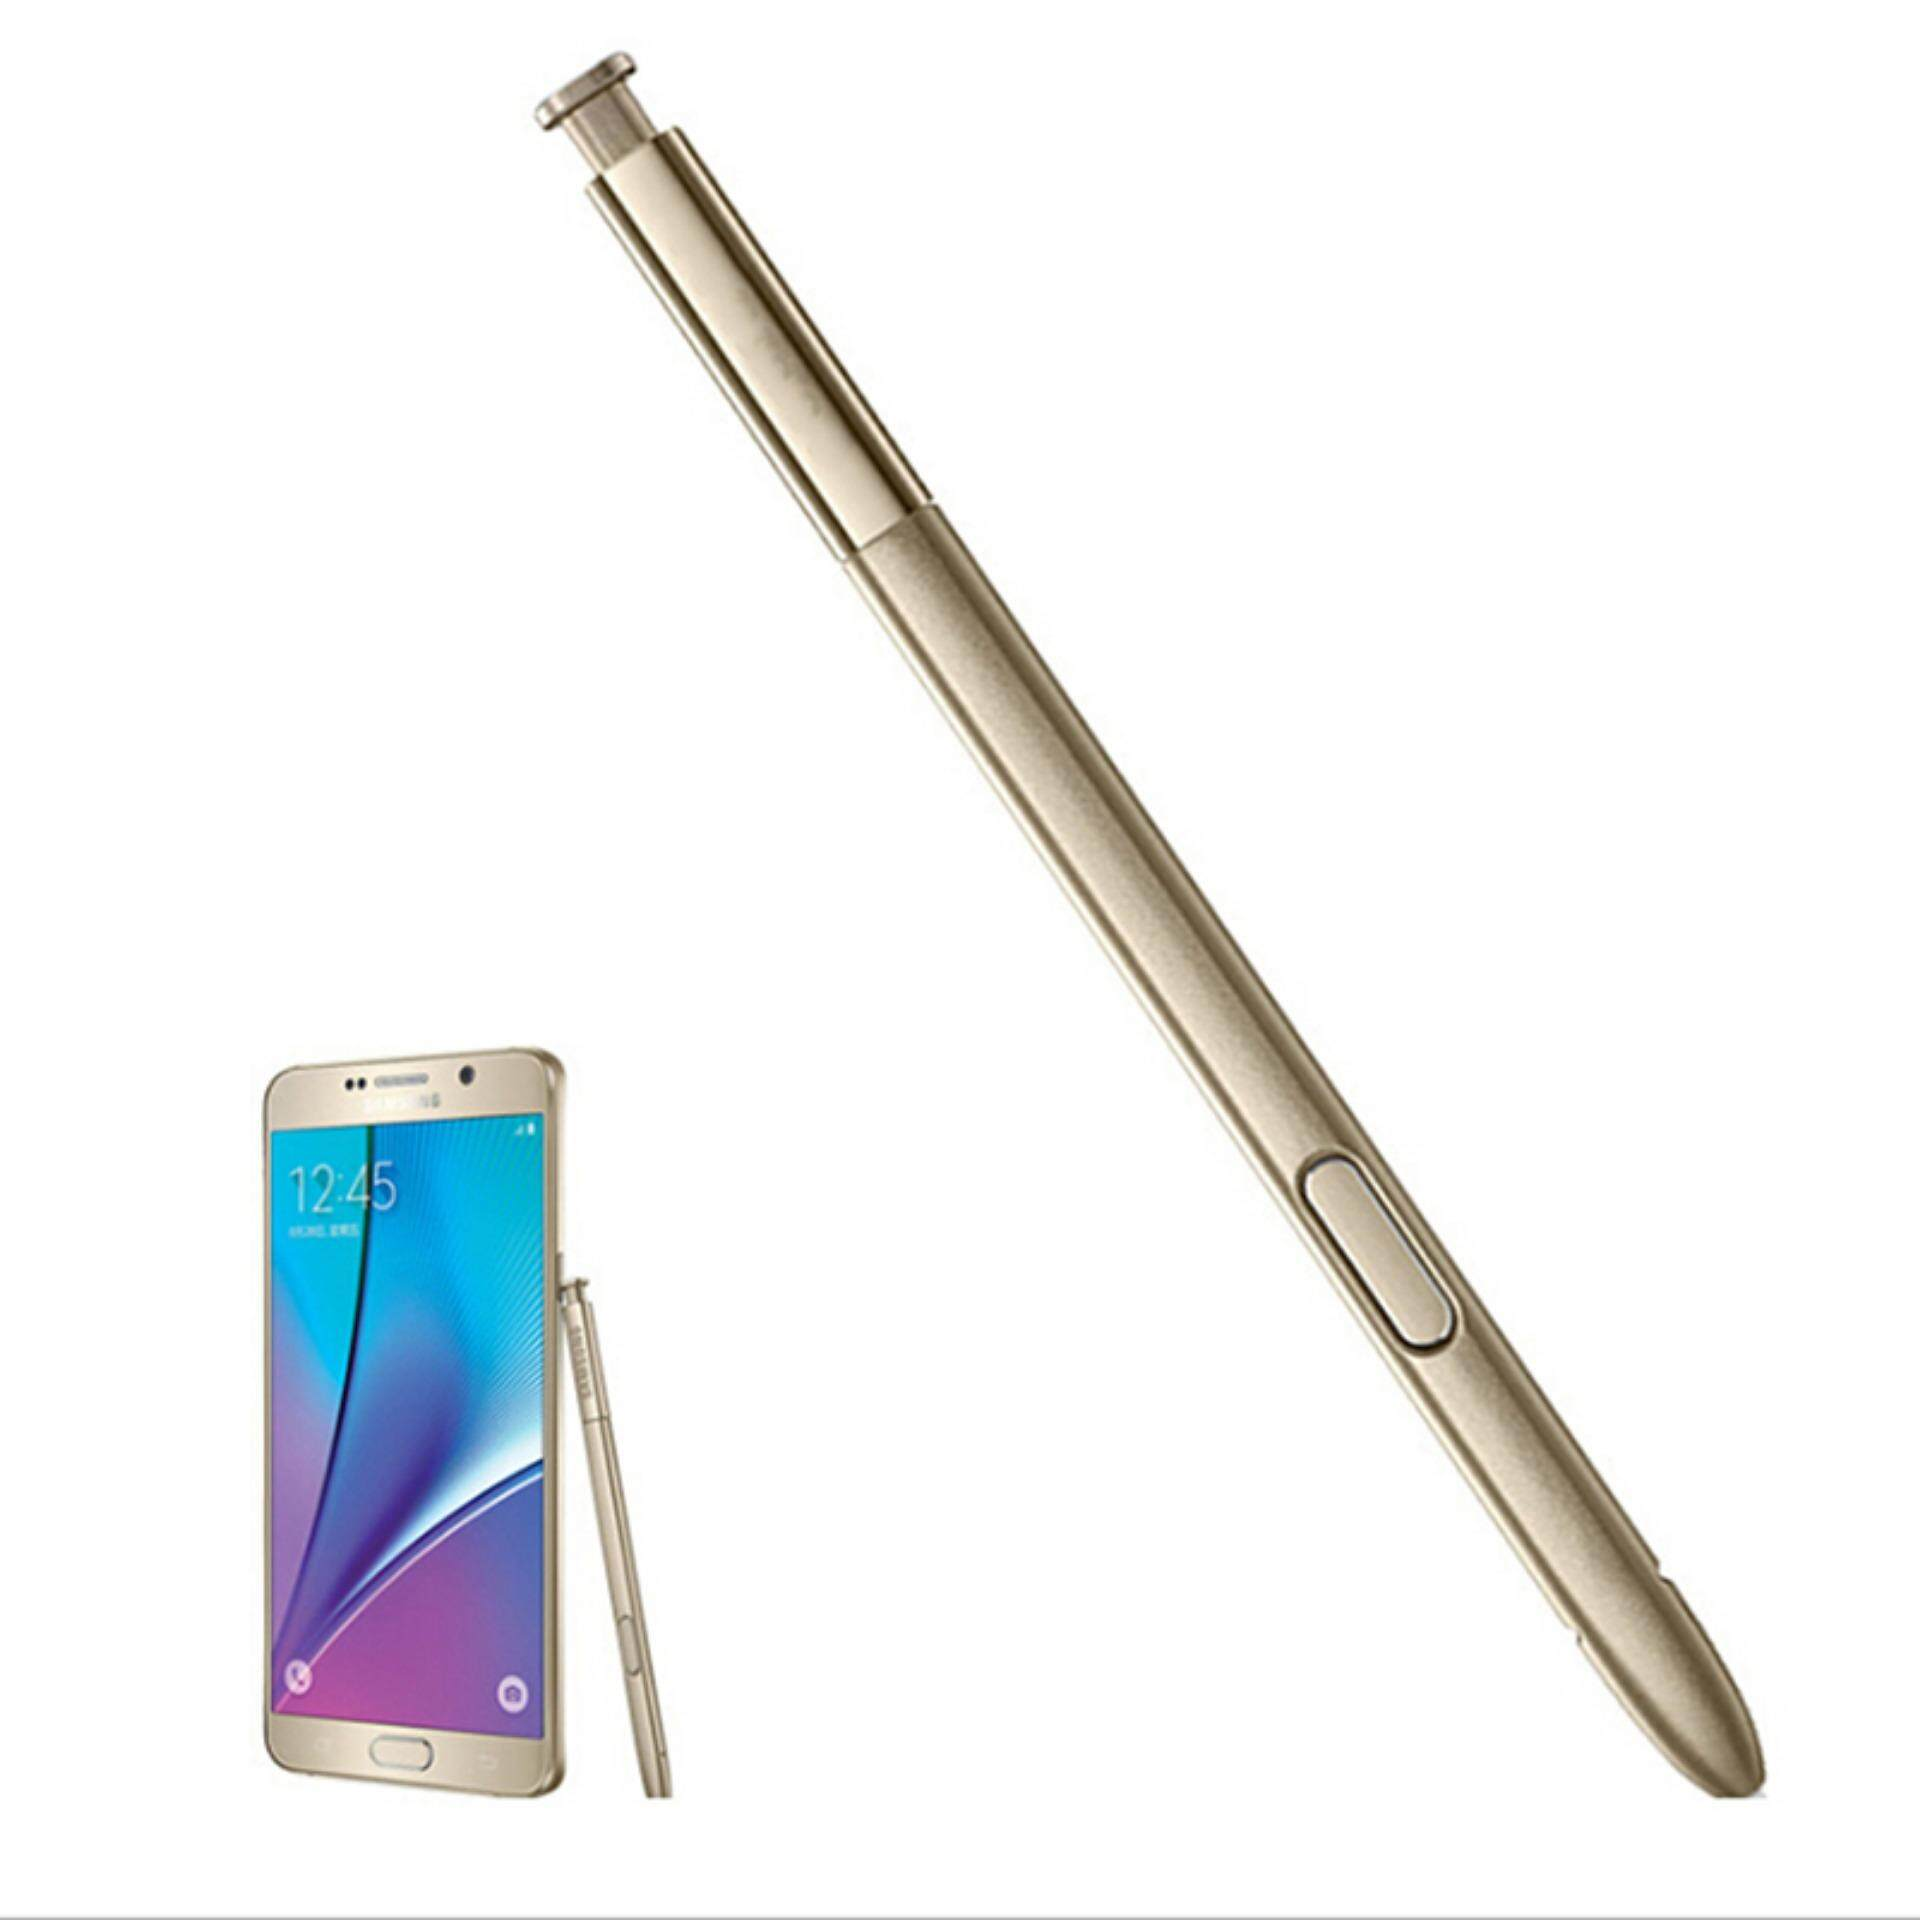 Replacement Stylus S Pen For Samsung Galaxy Note 5 At&t Verizon Sprint T-Mobile Portable Gold By Magical House.